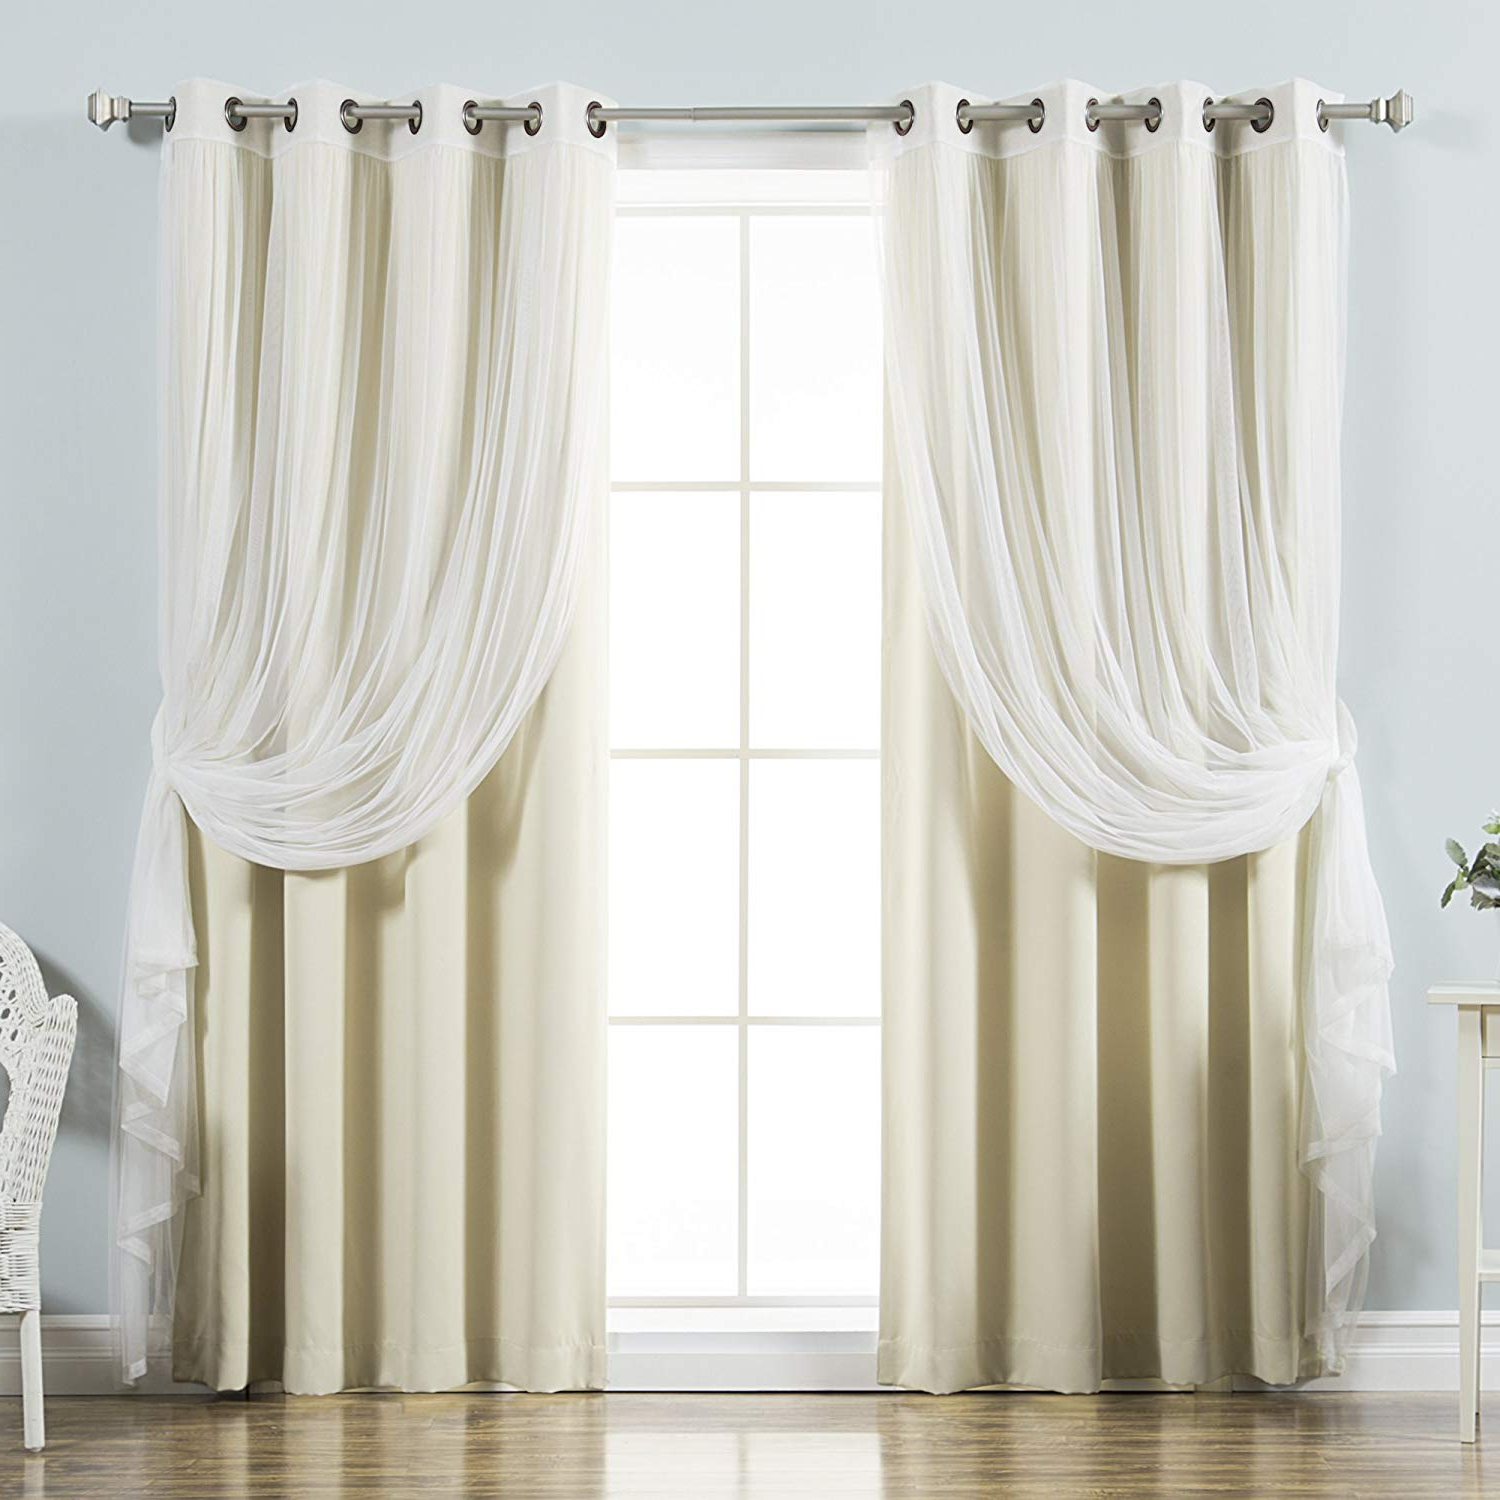 """Trendy Best Home Fashion Mix & Match Tulle Sheer Lace & Blackout Curtain Set – Antique Bronze Grommet Top – Beige – 52""""wx 96""""l – (2 Curtains And 2 Sheer Intended For Mix And Match Blackout Tulle Lace Sheer Curtain Panel Sets (View 8 of 20)"""